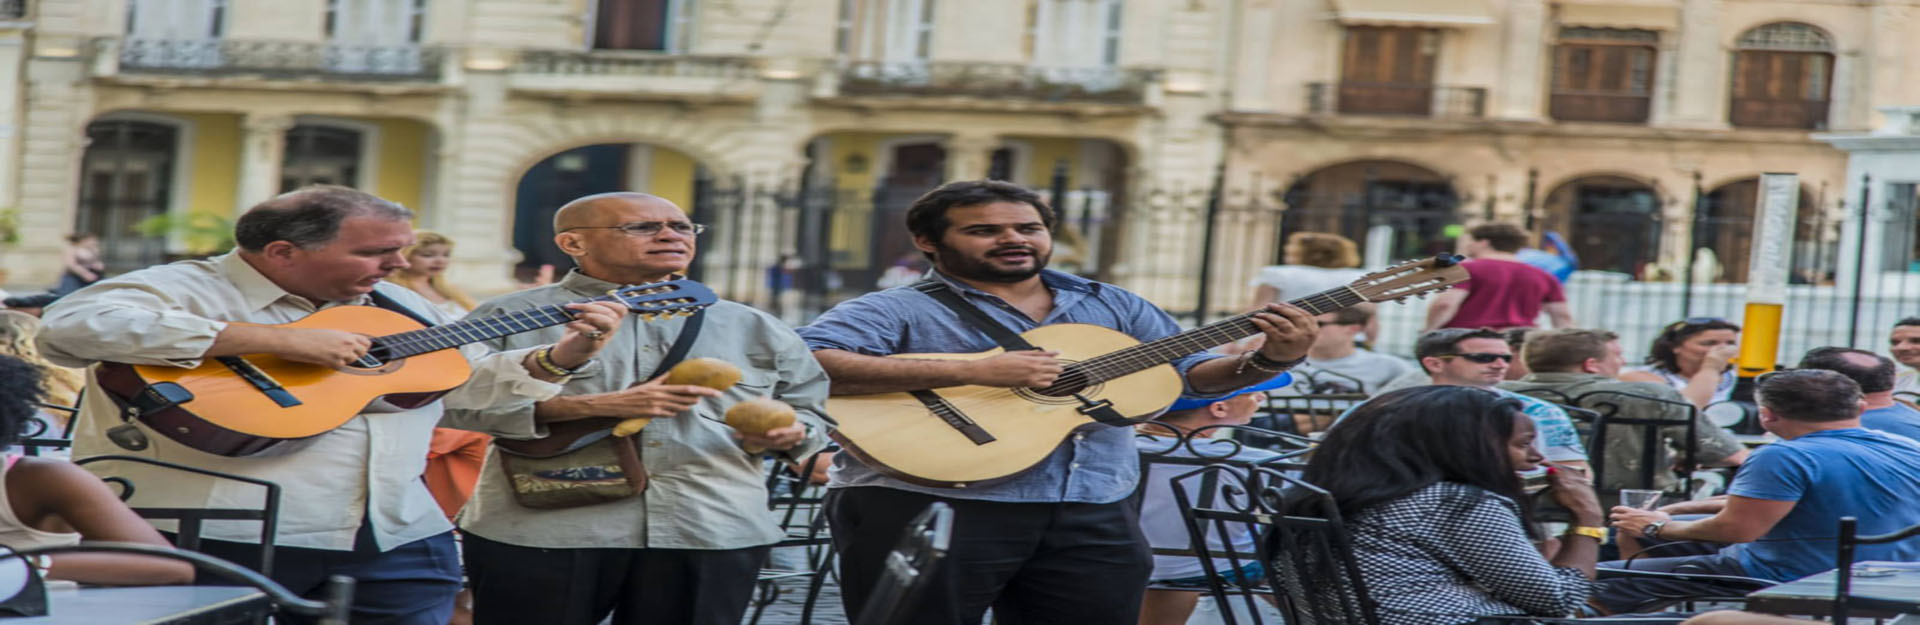 Traditional Cuban music in the Old Square, Cuba Travel